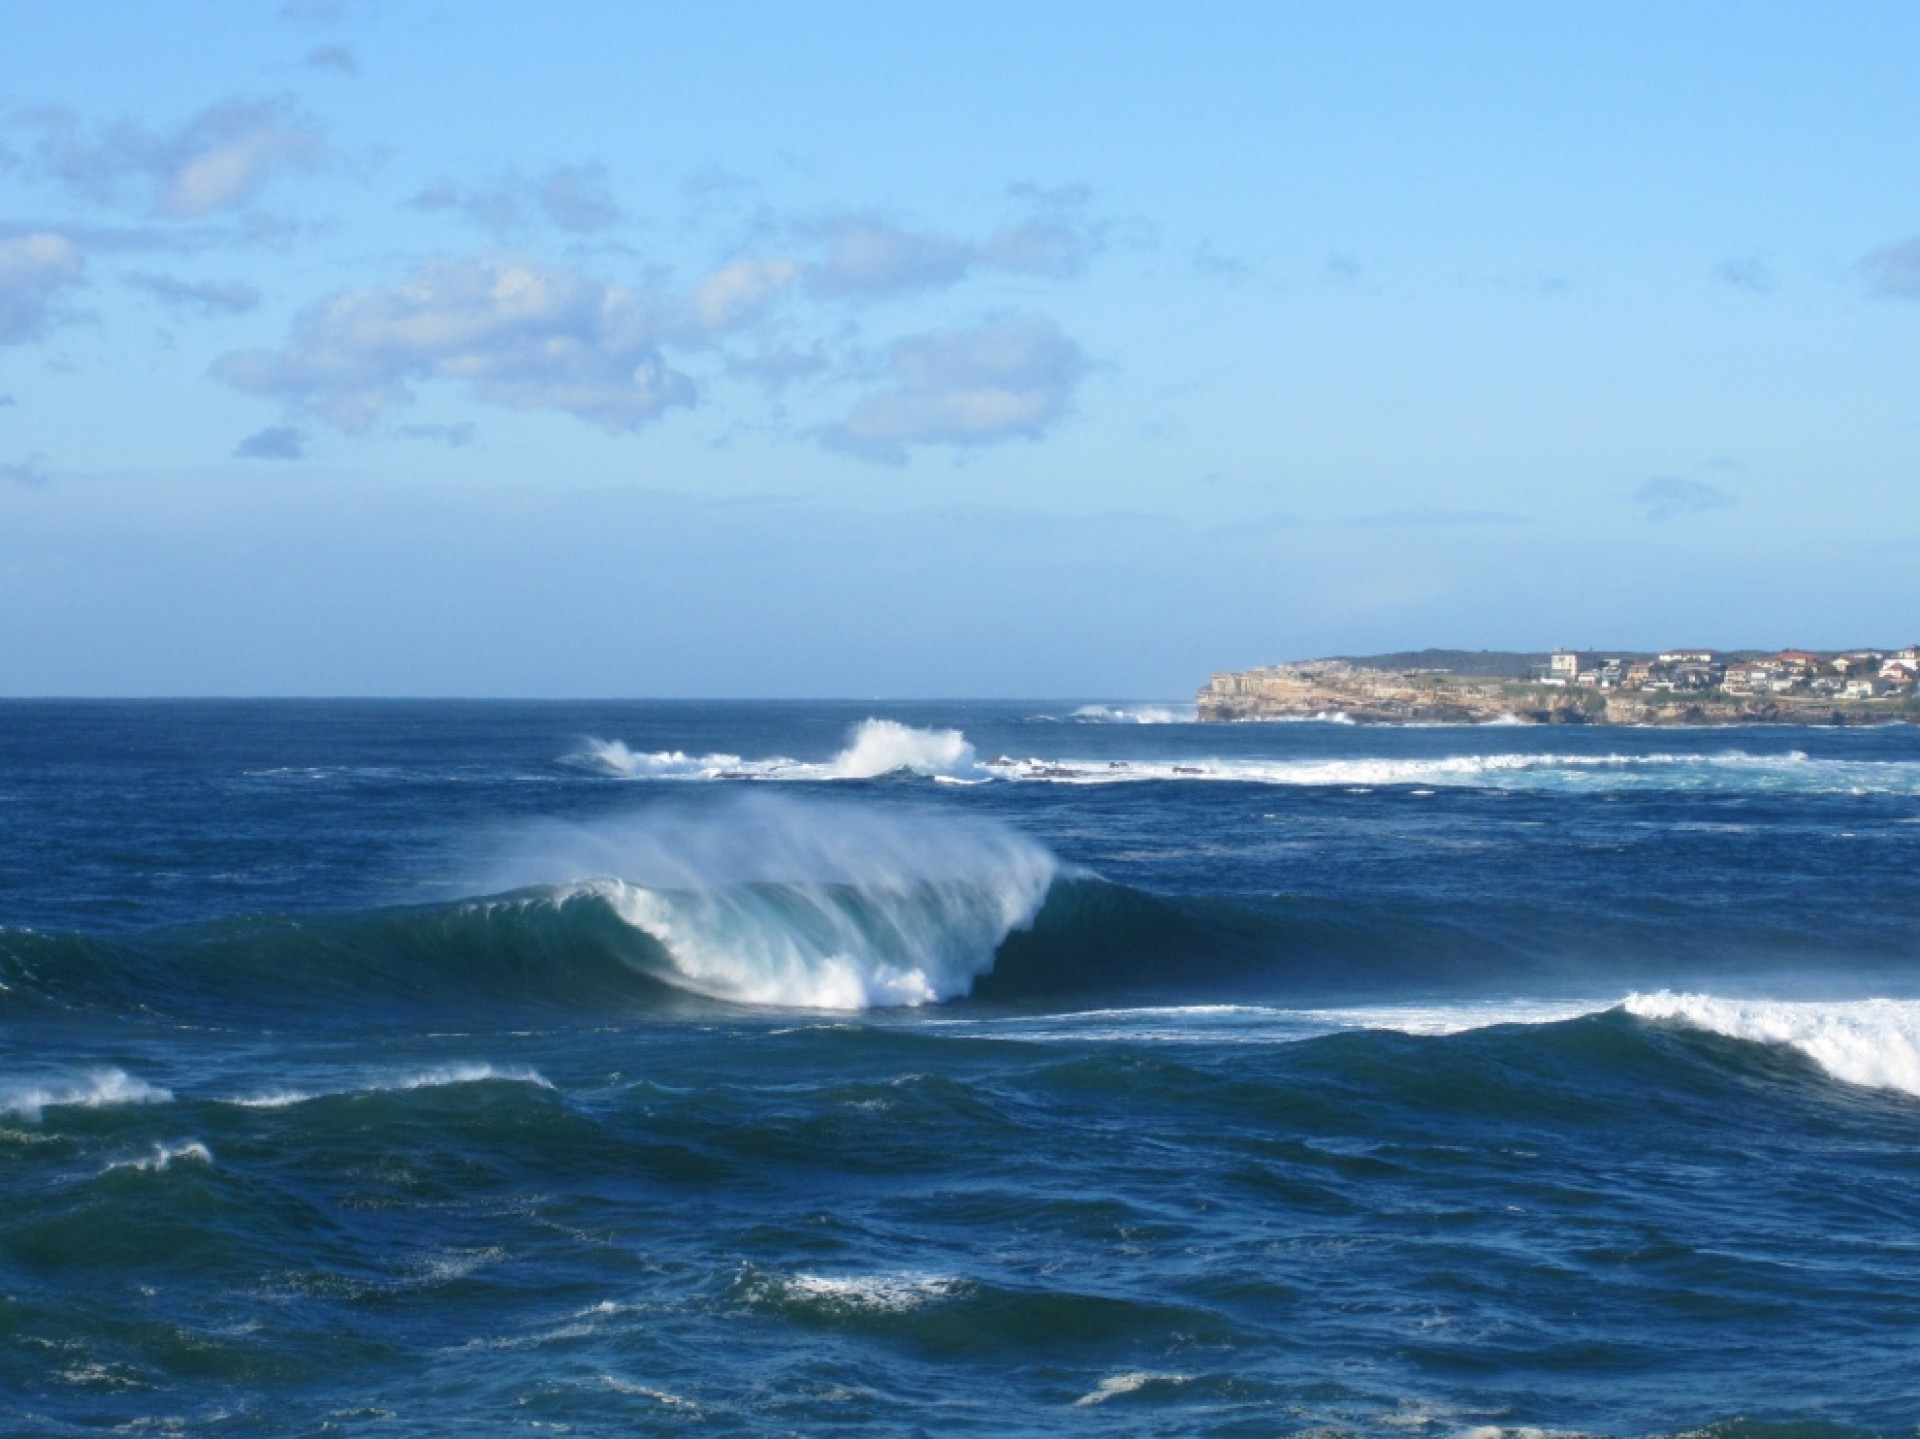 Bio's photo of Sydney (Bondi)